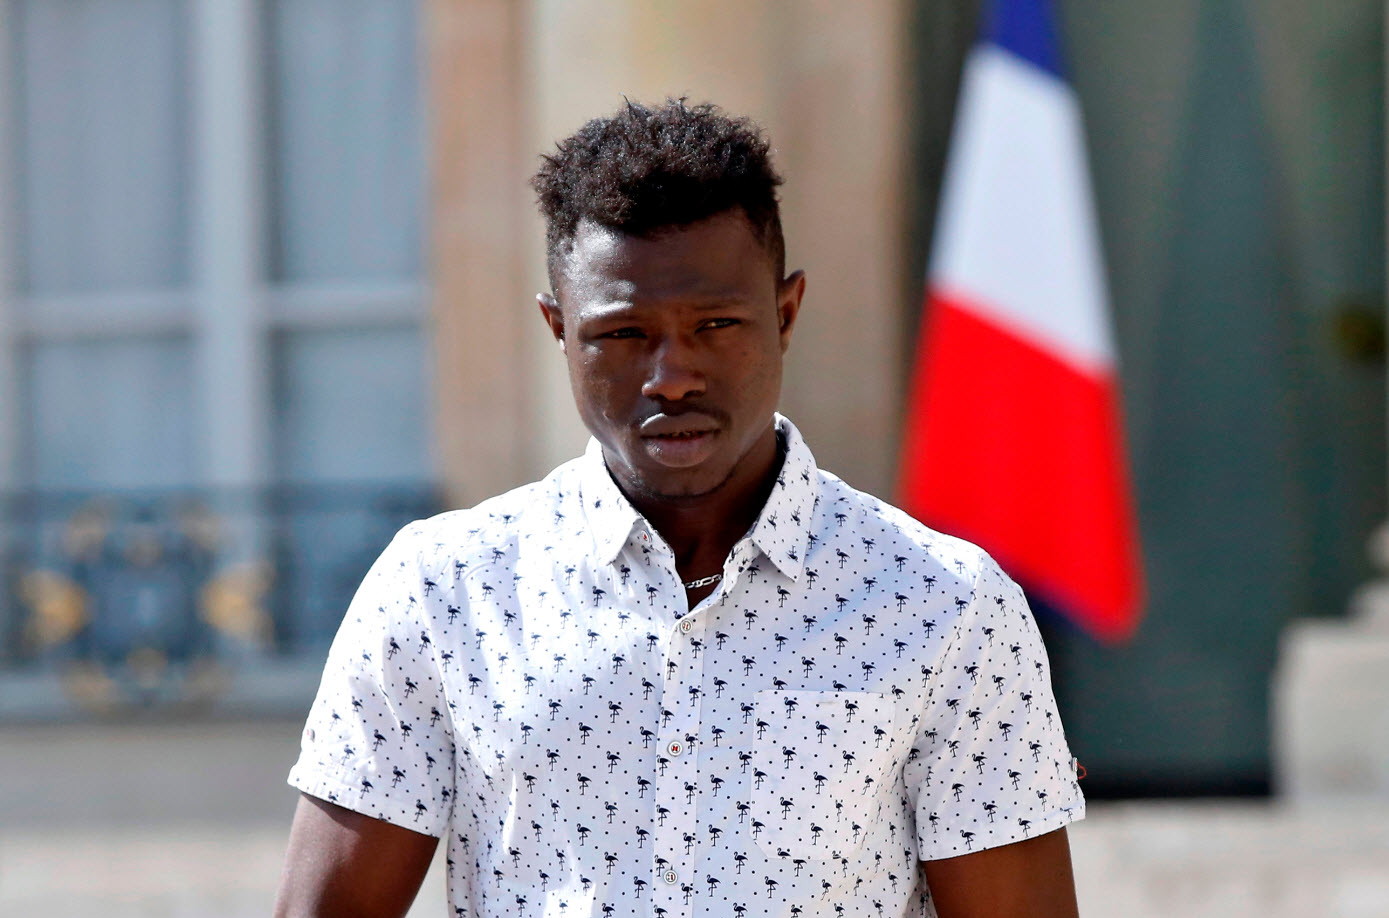 Mamoudou Gassama leaves the presidential Elysee Palace after meeting with the French President in Paris.